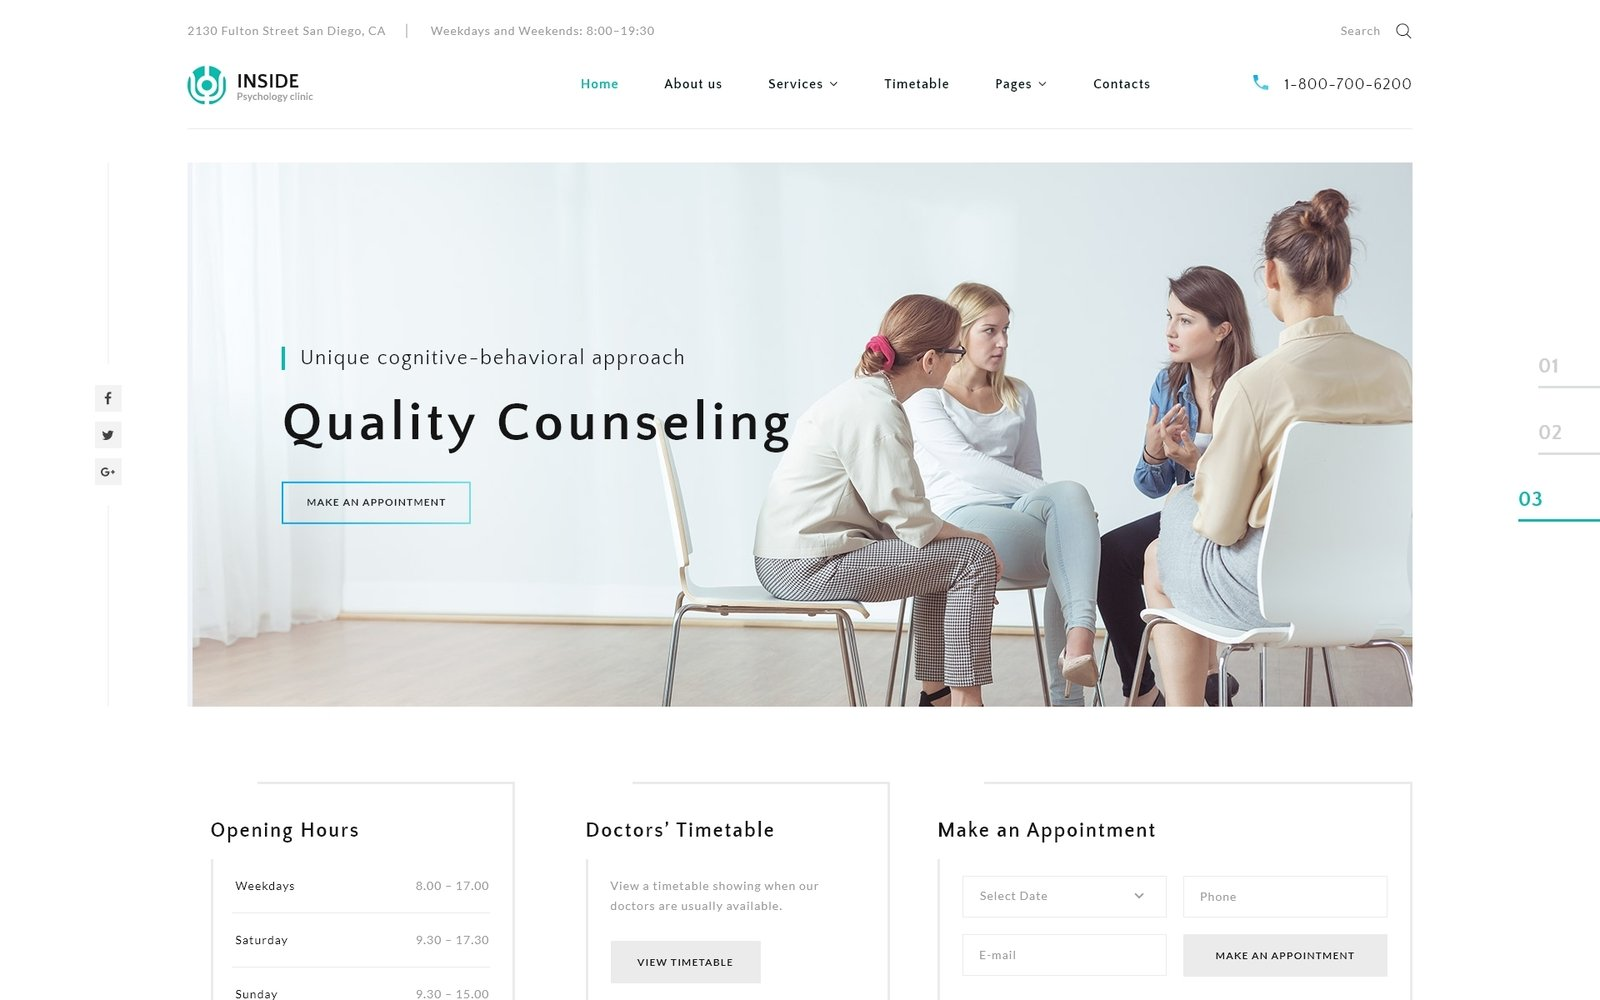 Inside - Psychology Clinic Multipage HTML5 Template Web №67685